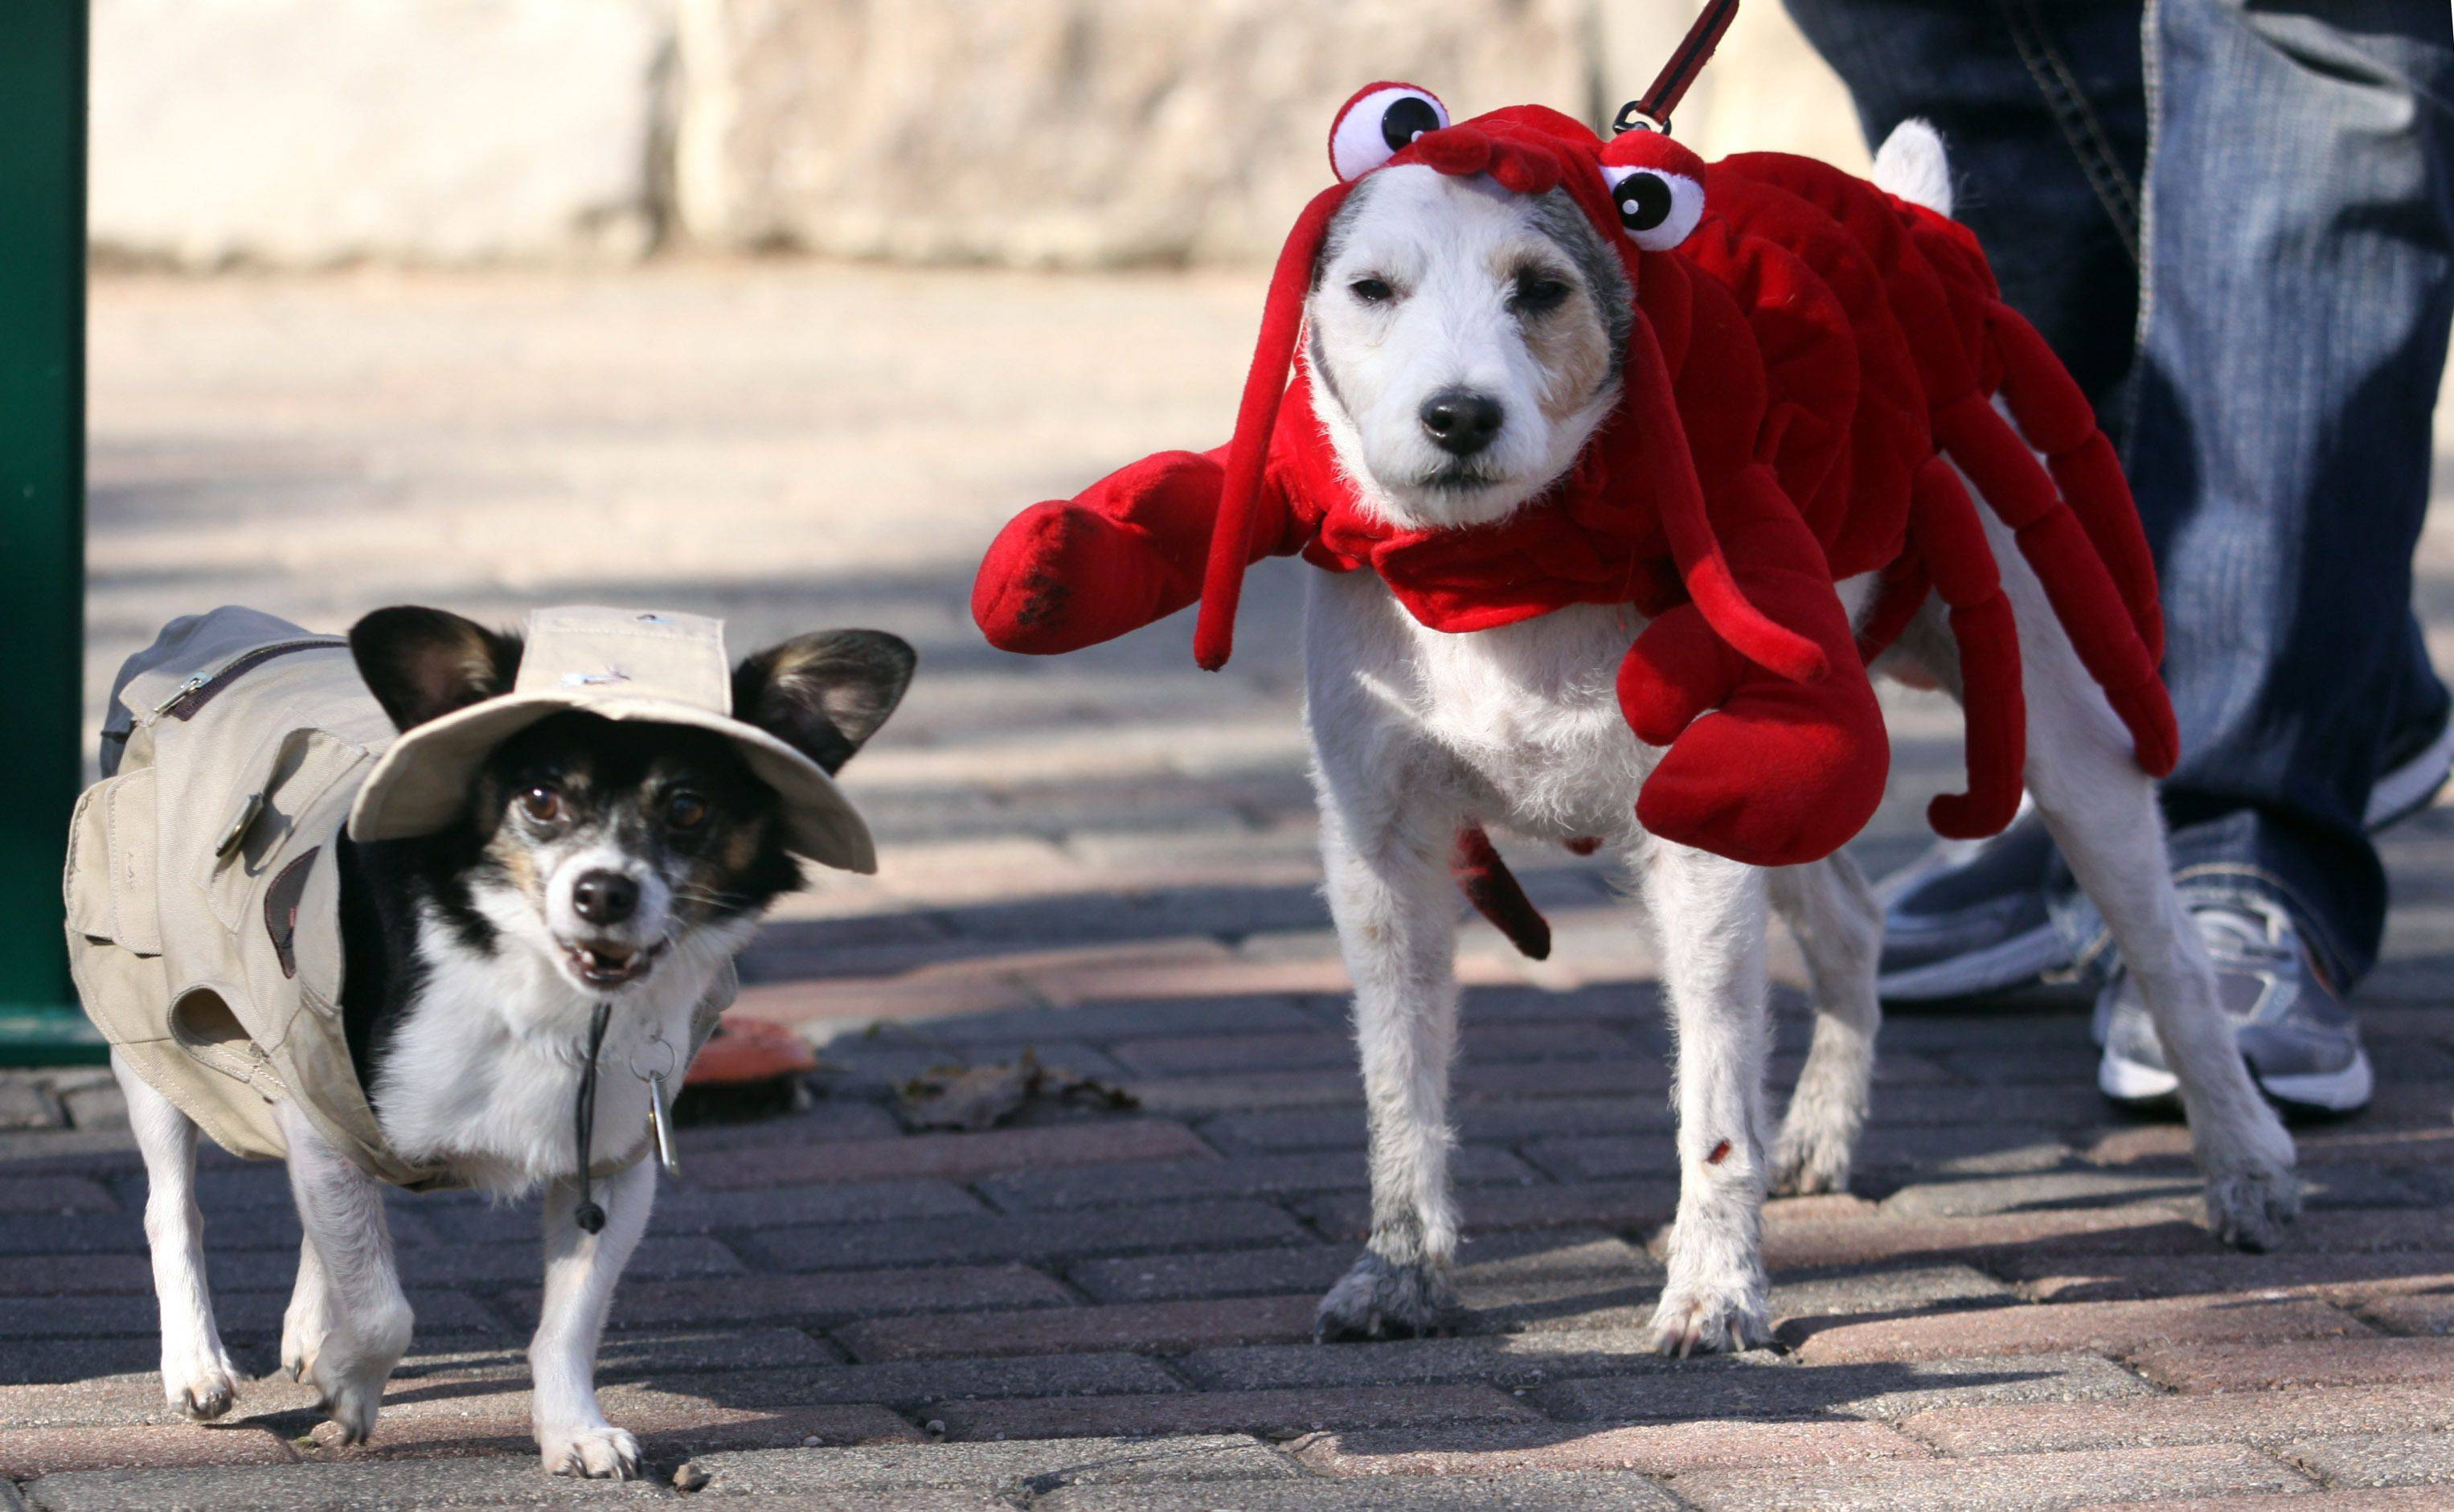 Rudy the chihuahua mix, left, and Owen the jack russell terrier, right, don costumes dressed as a fisherman and his lobster during the Howl-o-Ween Pet Parade event at Peck Farm Park in Geneva on Saturday. The two dogs are owned by Molly and Kevin Conner of Elgin.